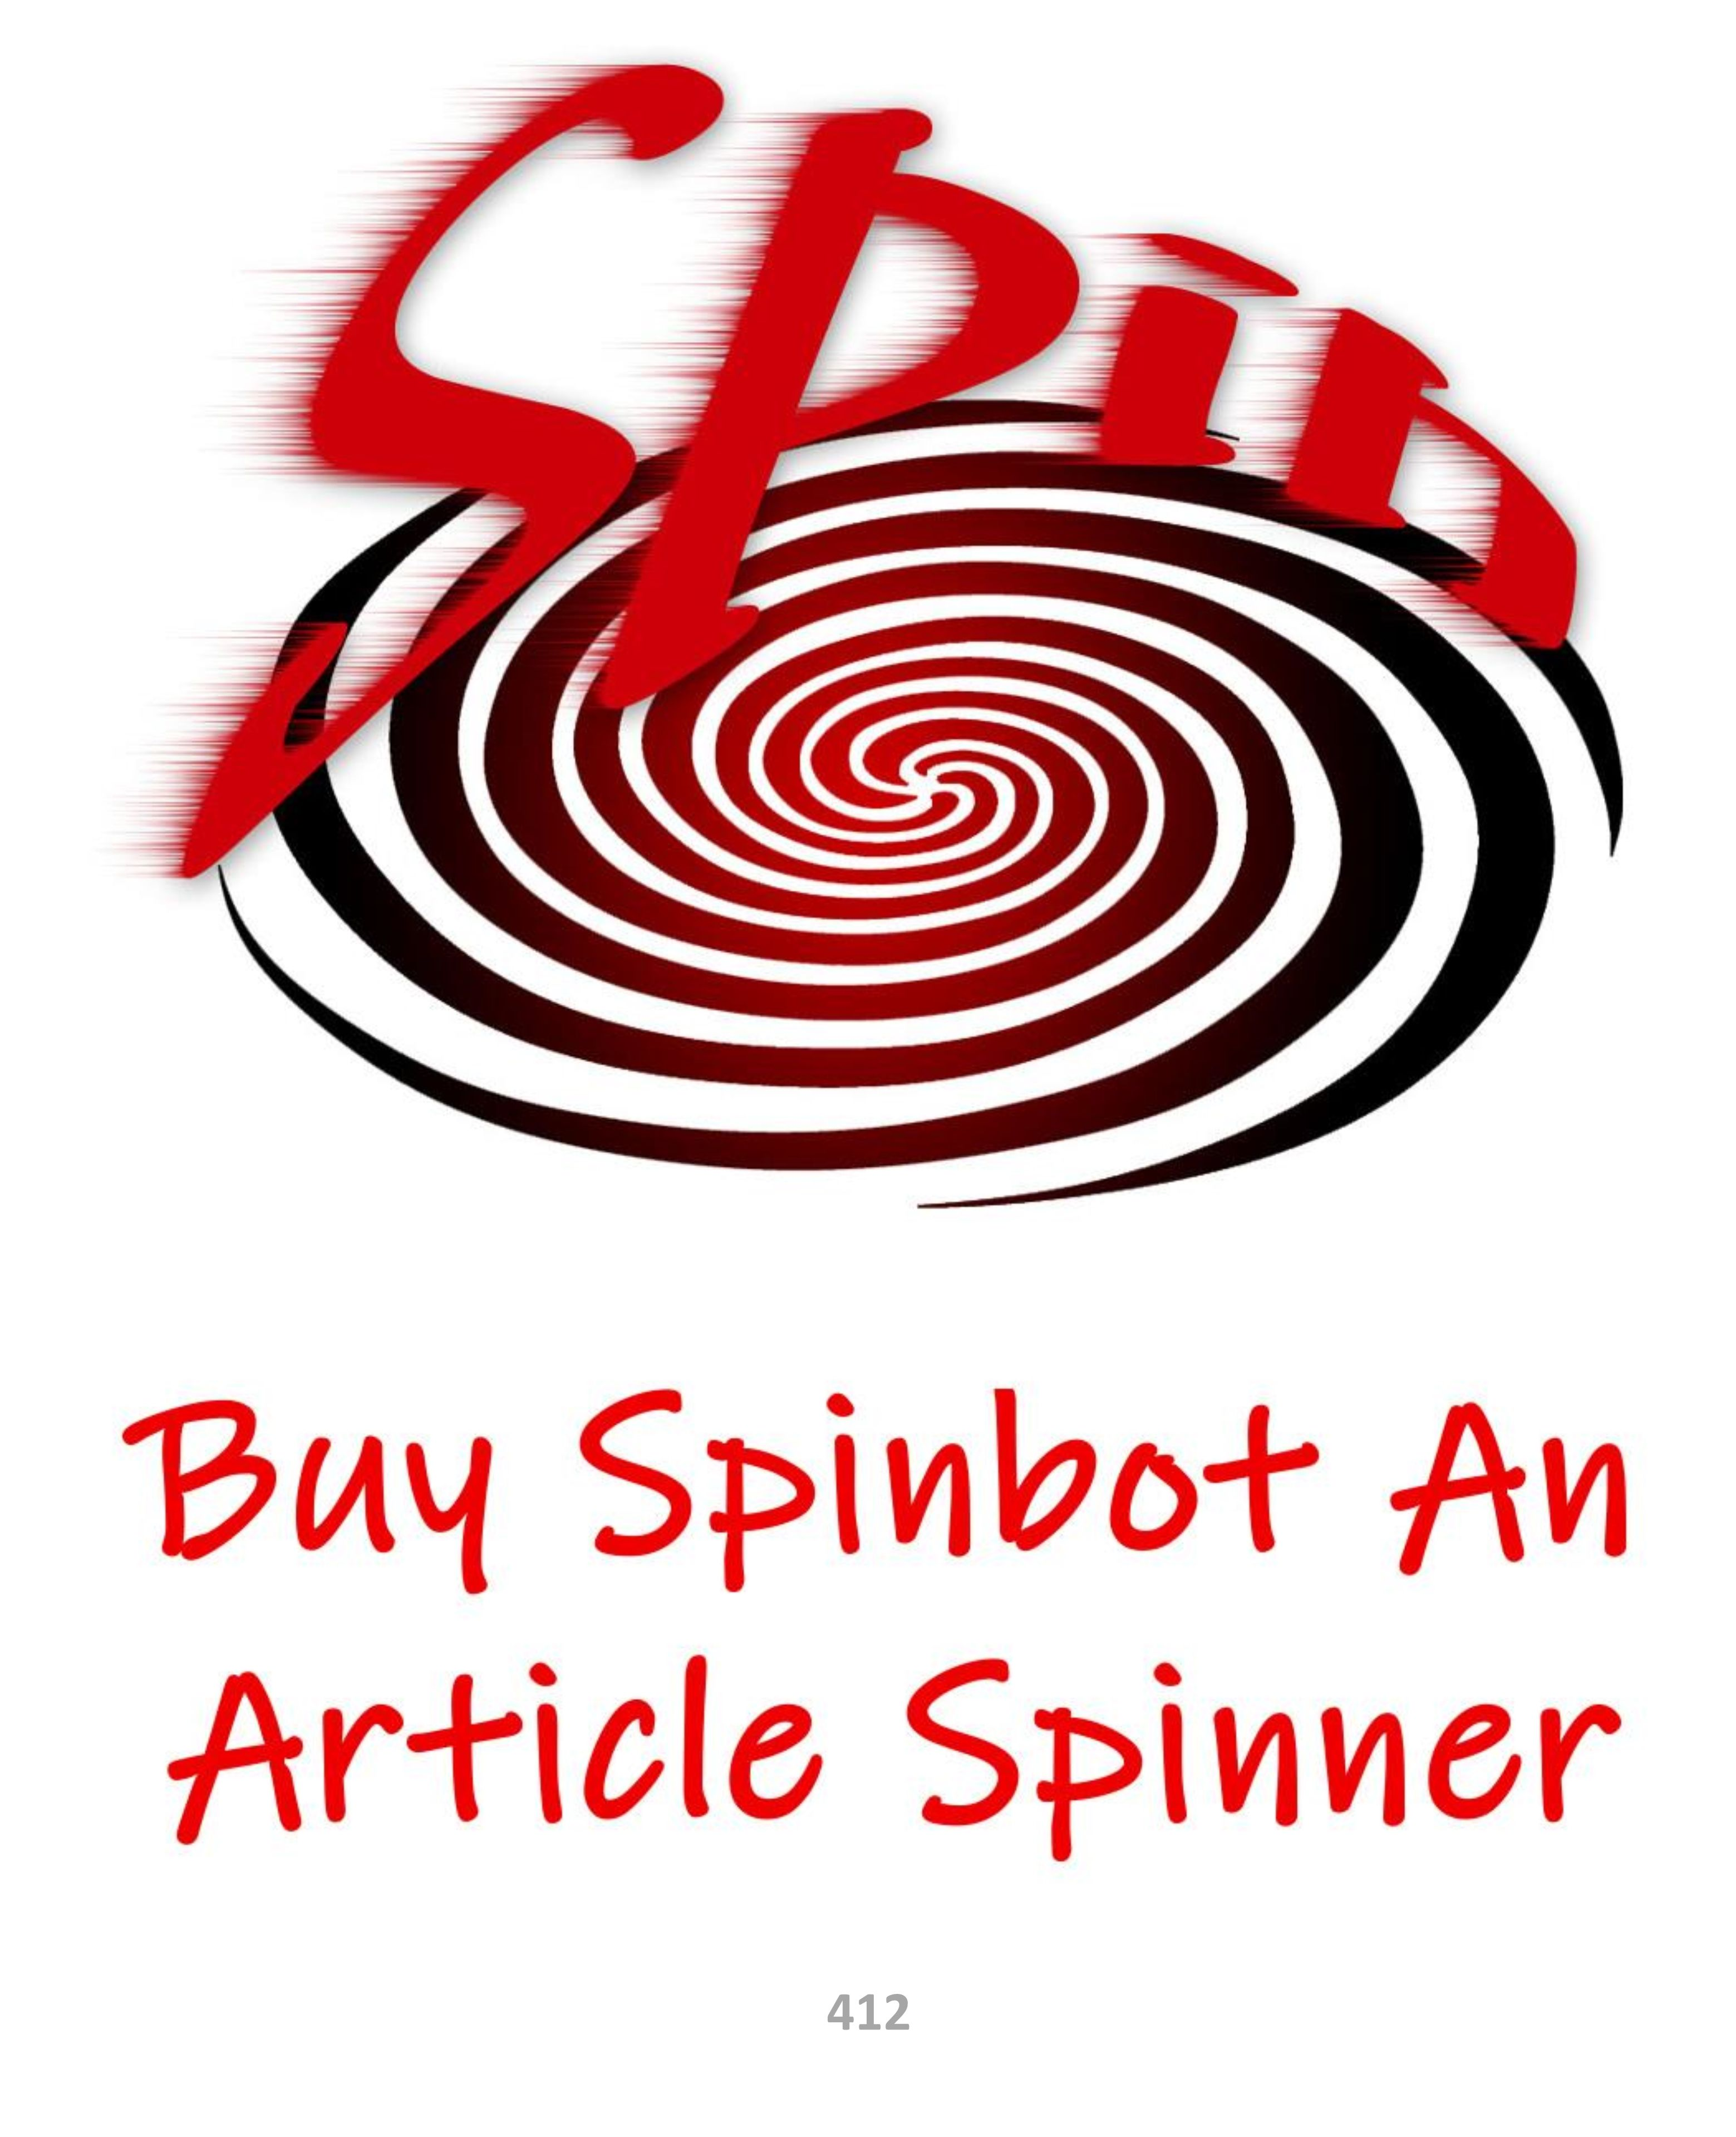 Spinbot Use My Article Spinner Instead Clas Tool Thing To Sell Spinning Paraphrasing Download